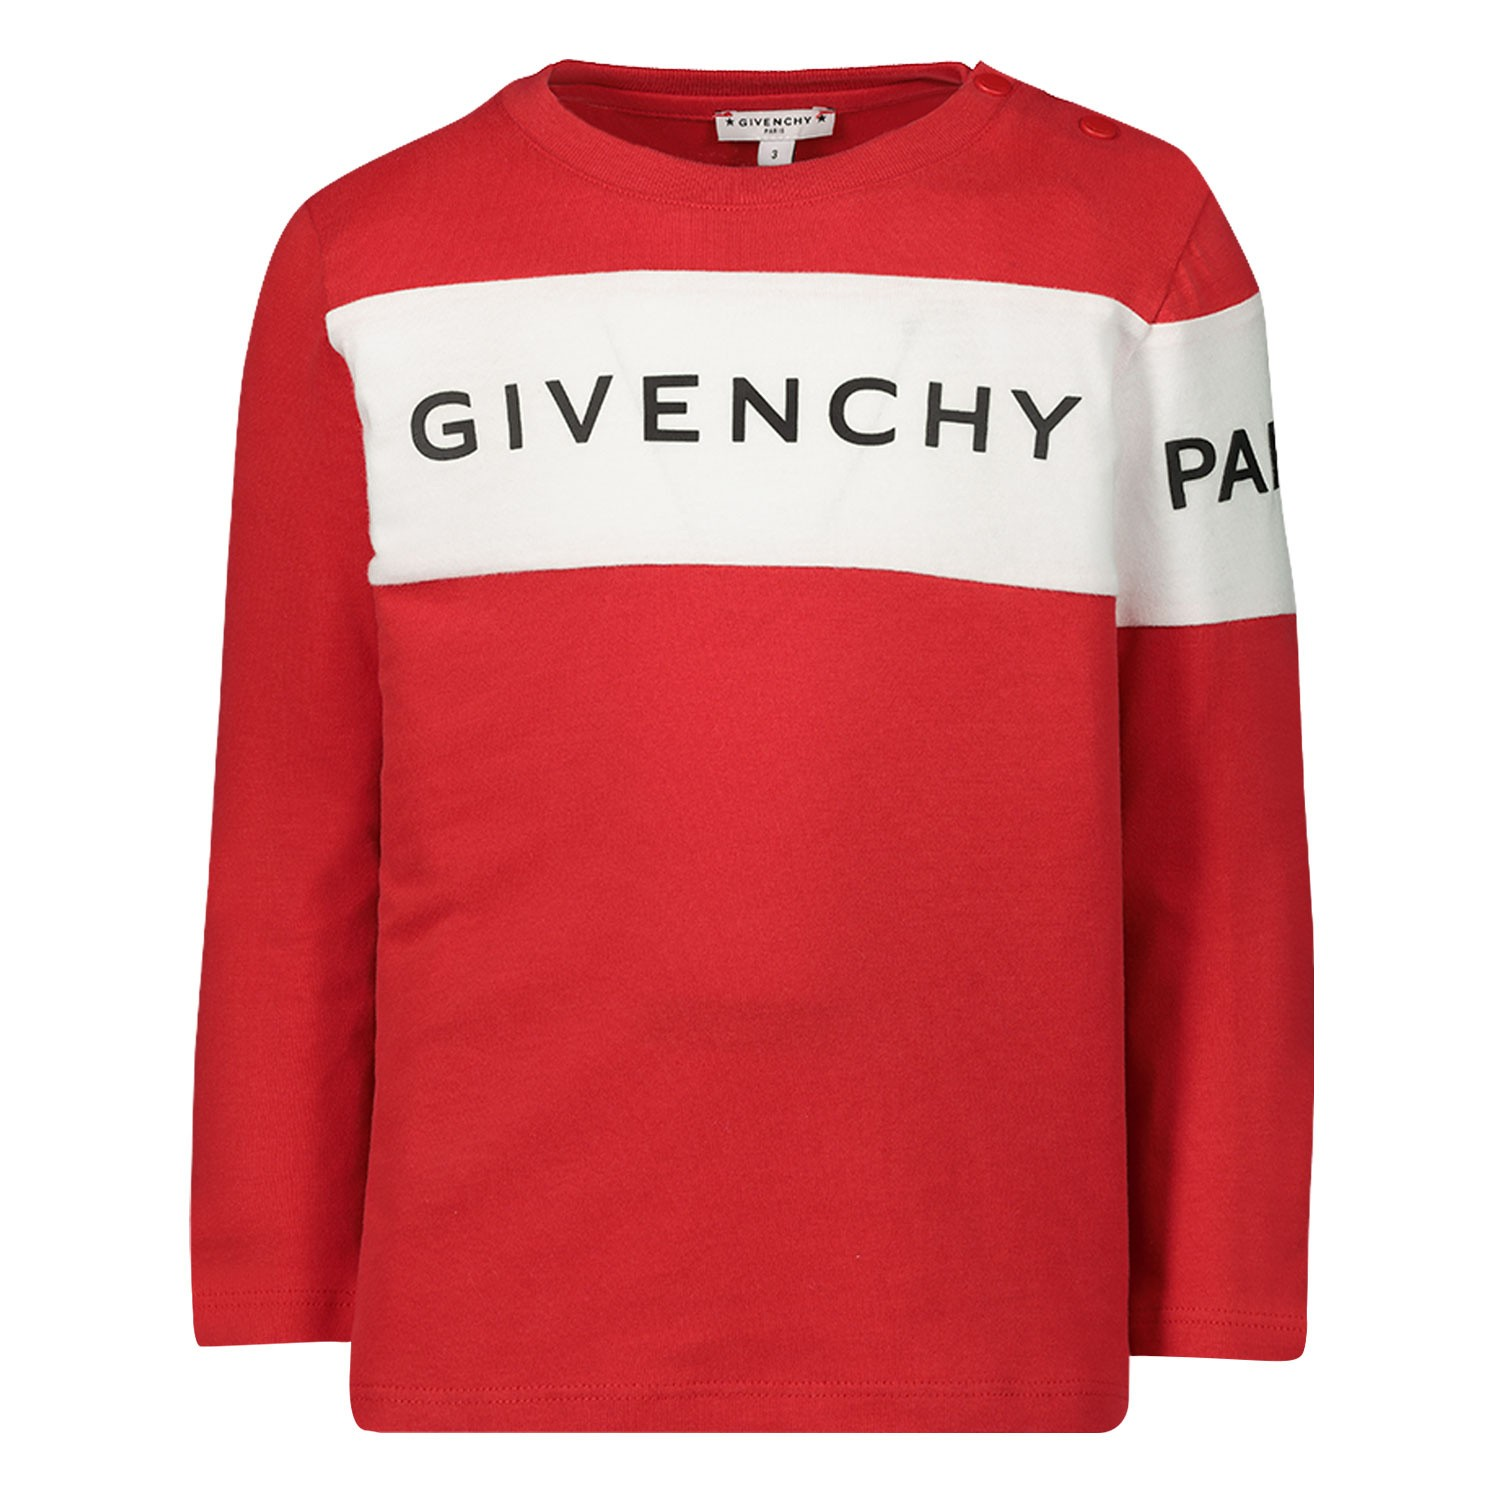 Afbeelding van Givenchy H05090 baby t-shirt rood